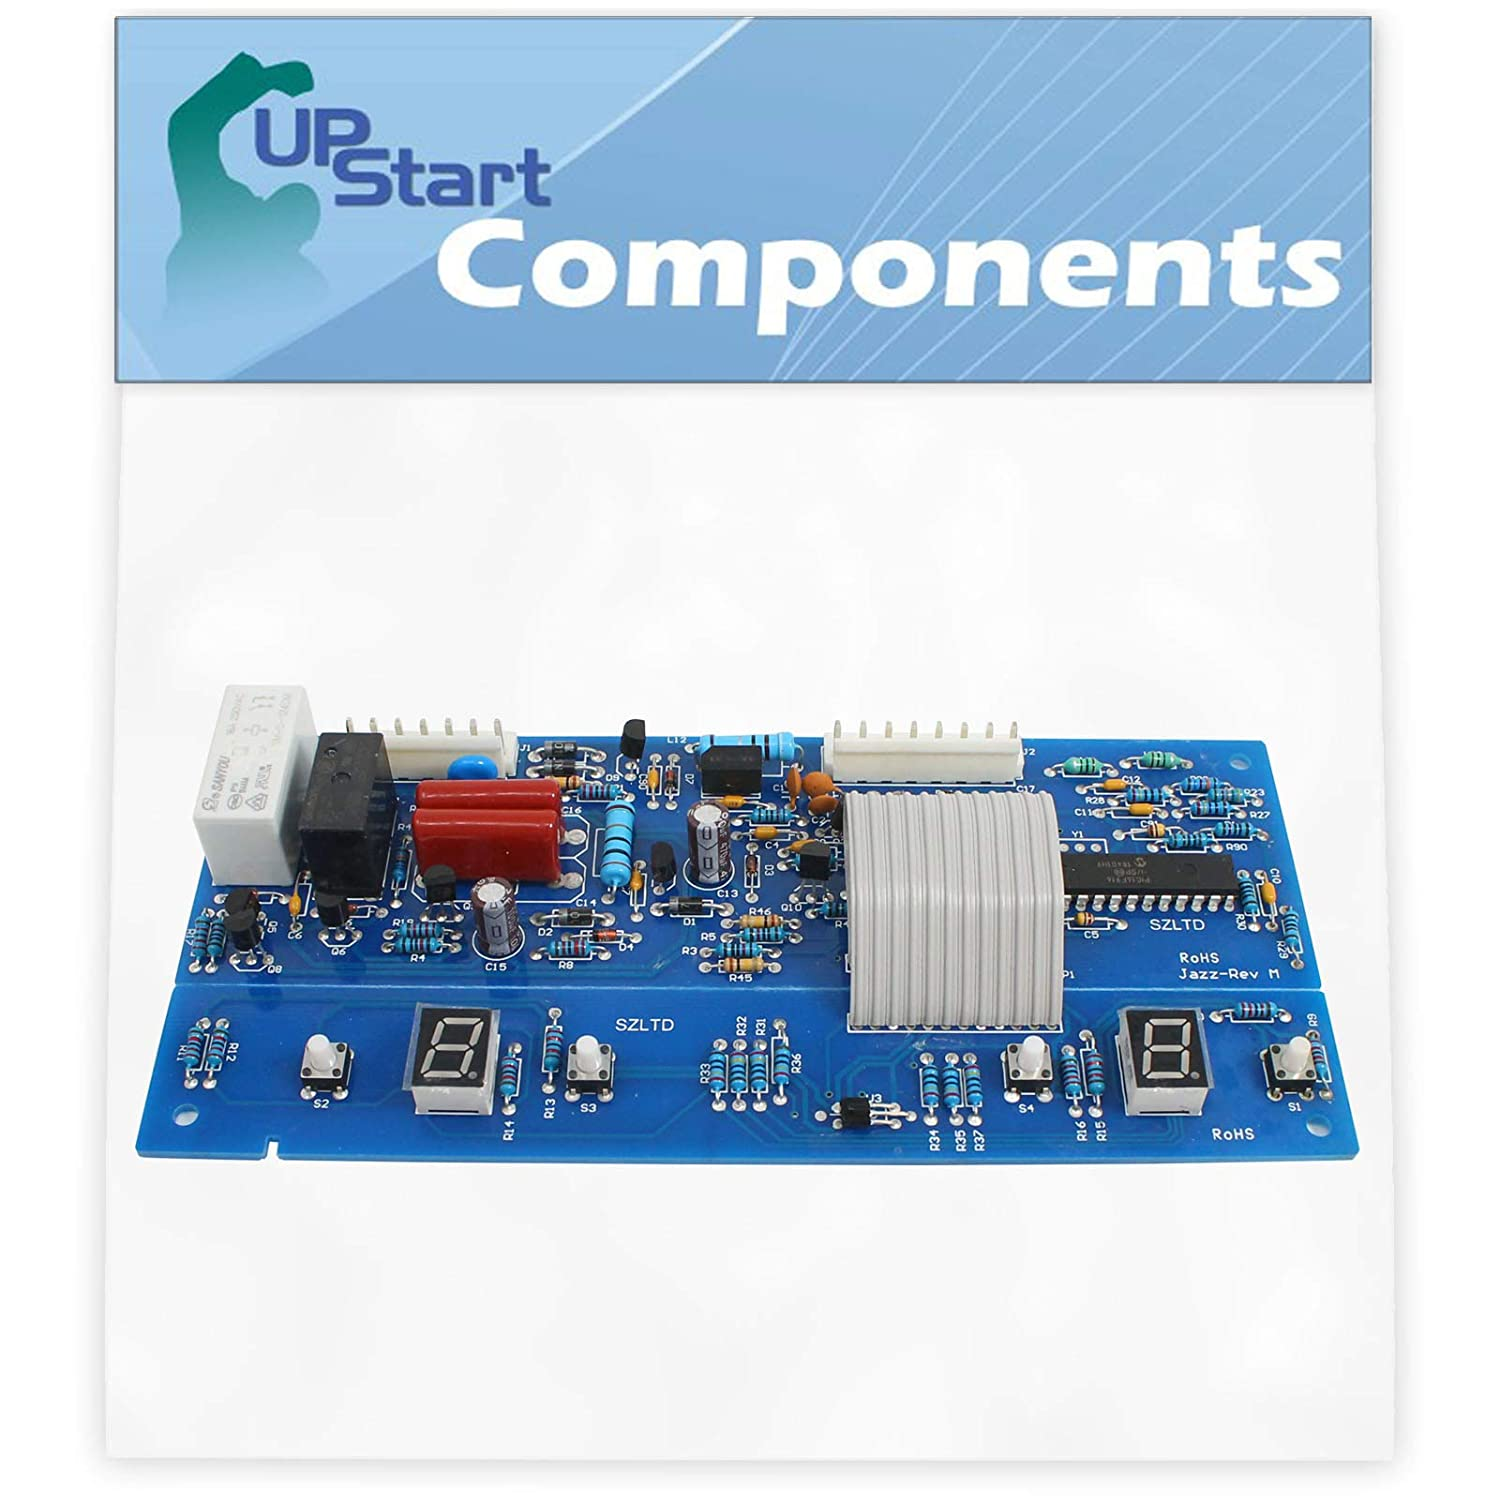 W10503278 Refrigerator Control Jazz Board Replacement for Maytag MFF2258VEW2 Refrigerator - Compatible with WPW10503278 Control Board